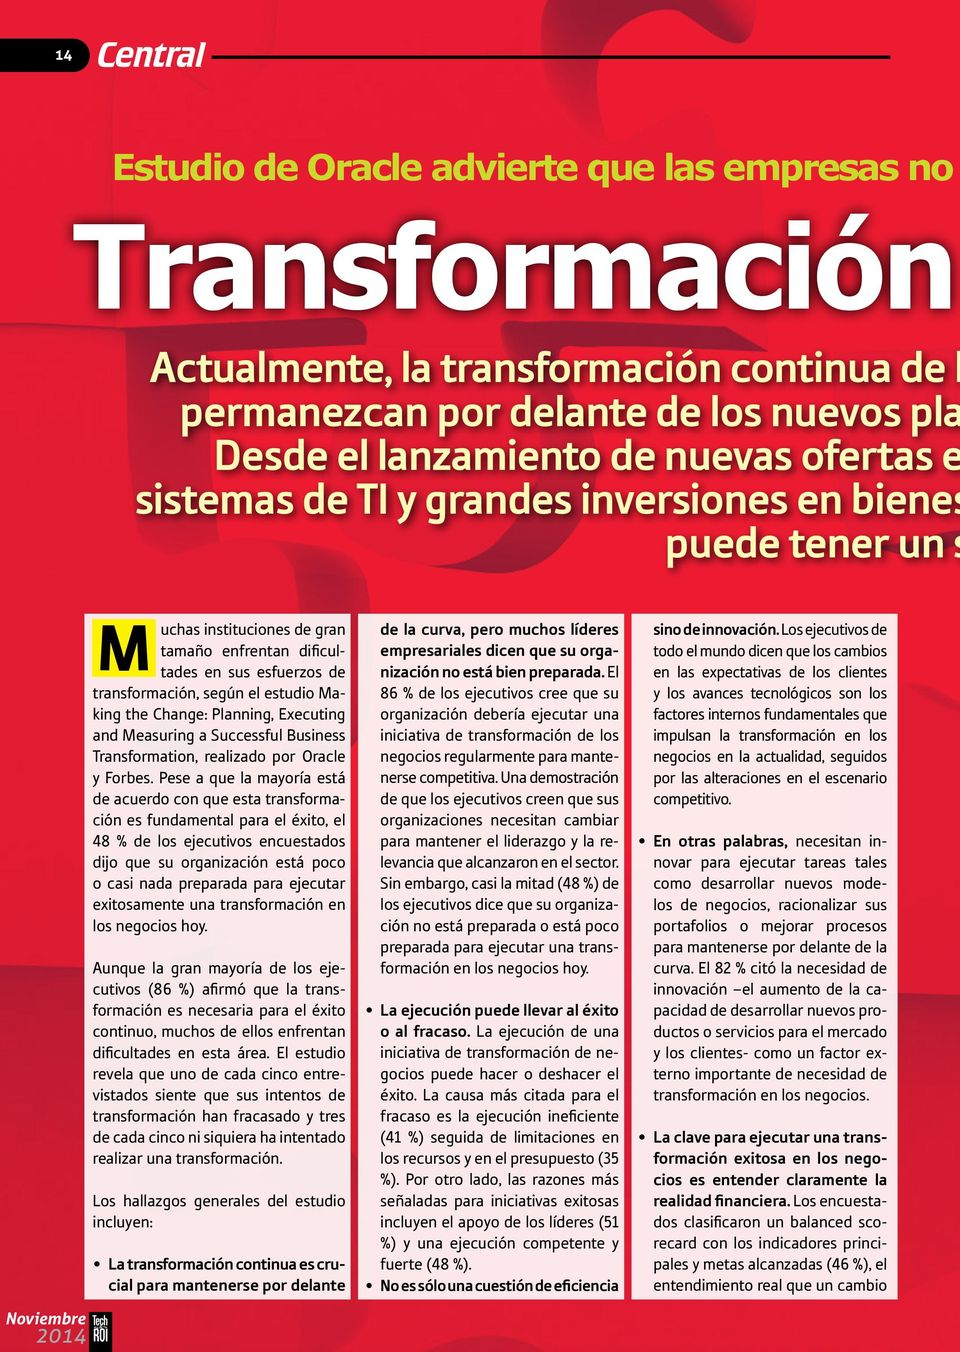 Change: Planning, Executing and Measuring a Successful Business Transformation, realizado por Oracle y Forbes.